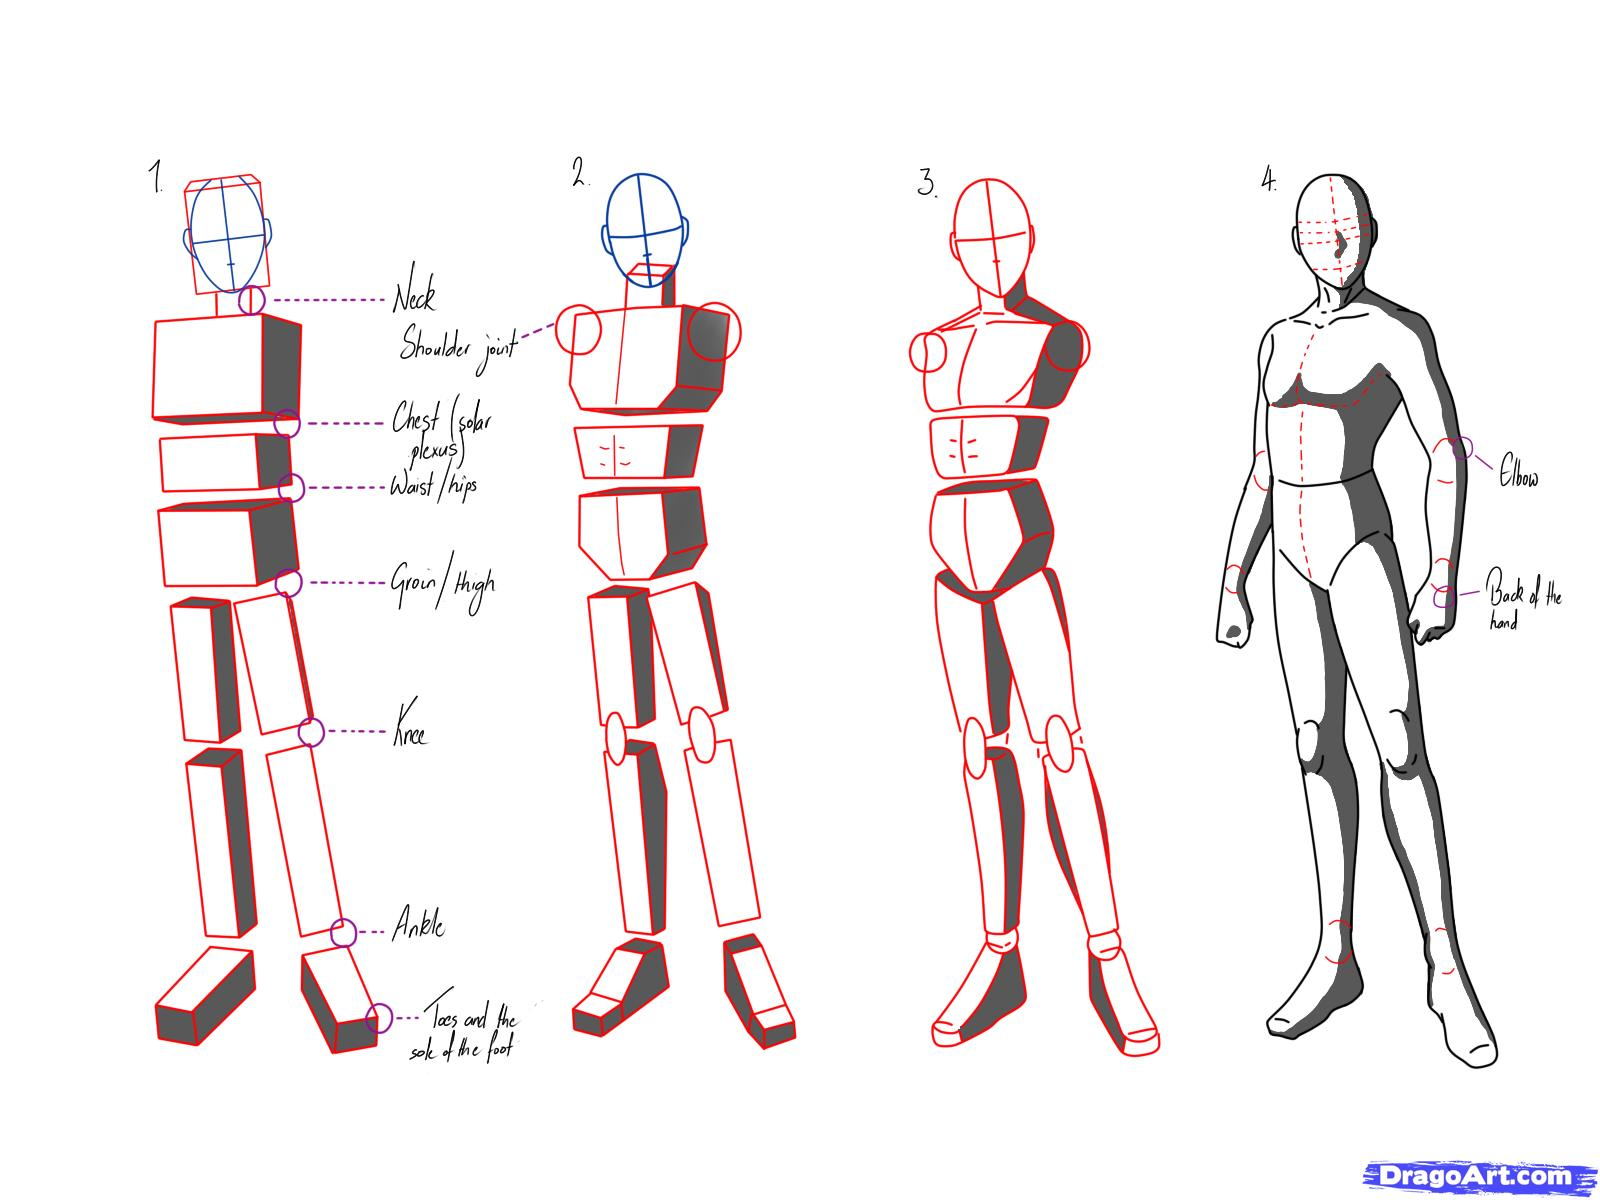 Parts Of The Body Drawing At Getdrawings Free For Personal Use